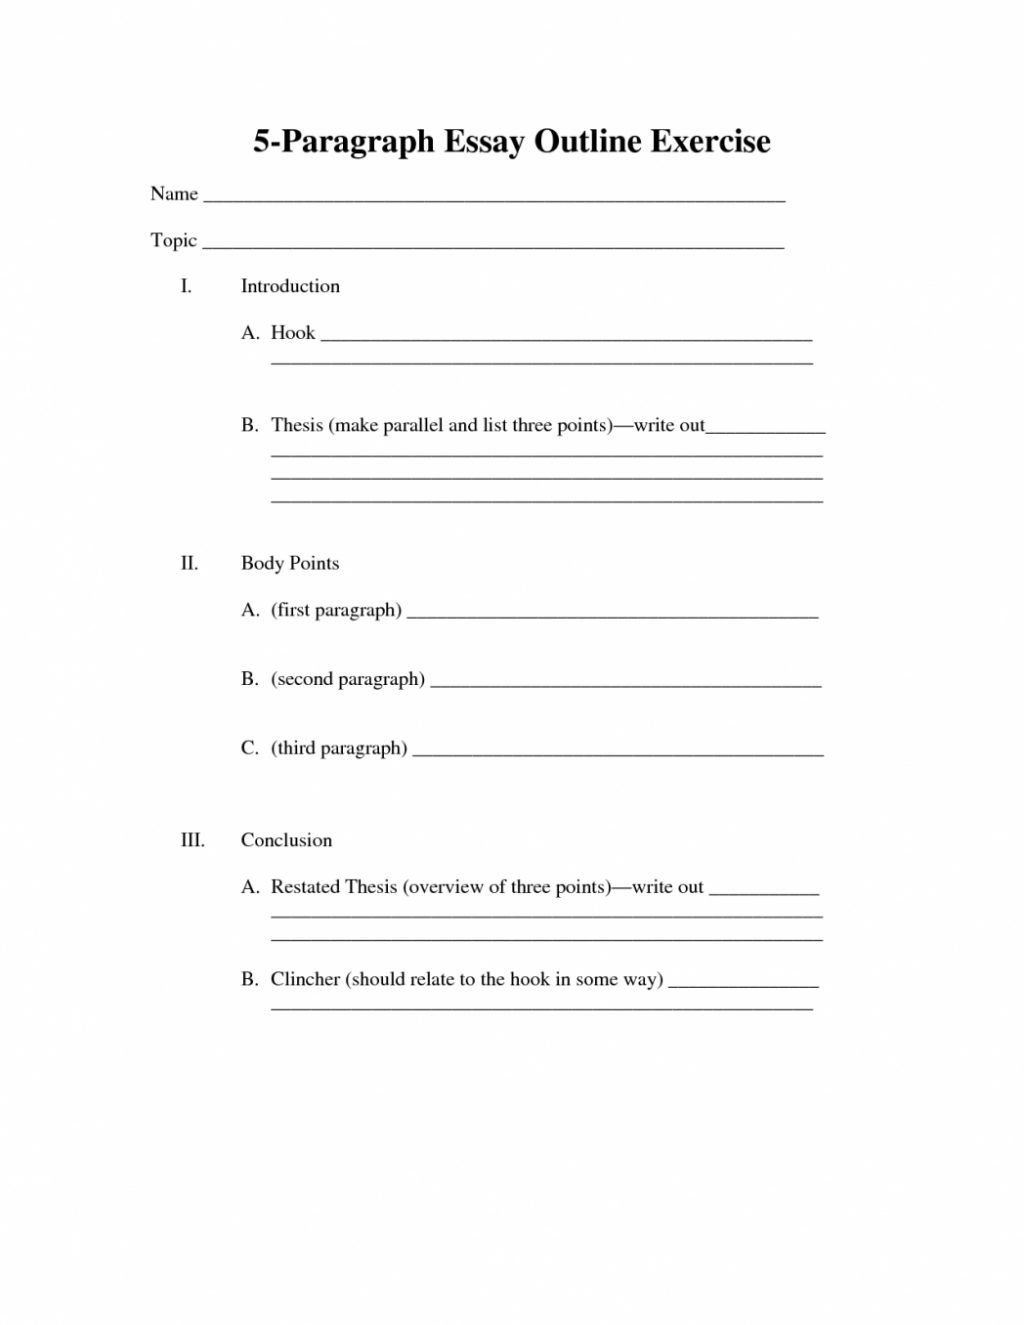 4th Grade Paragraph Writing Worksheets Outline for Paragraph Essay Writing Five oracleboss within